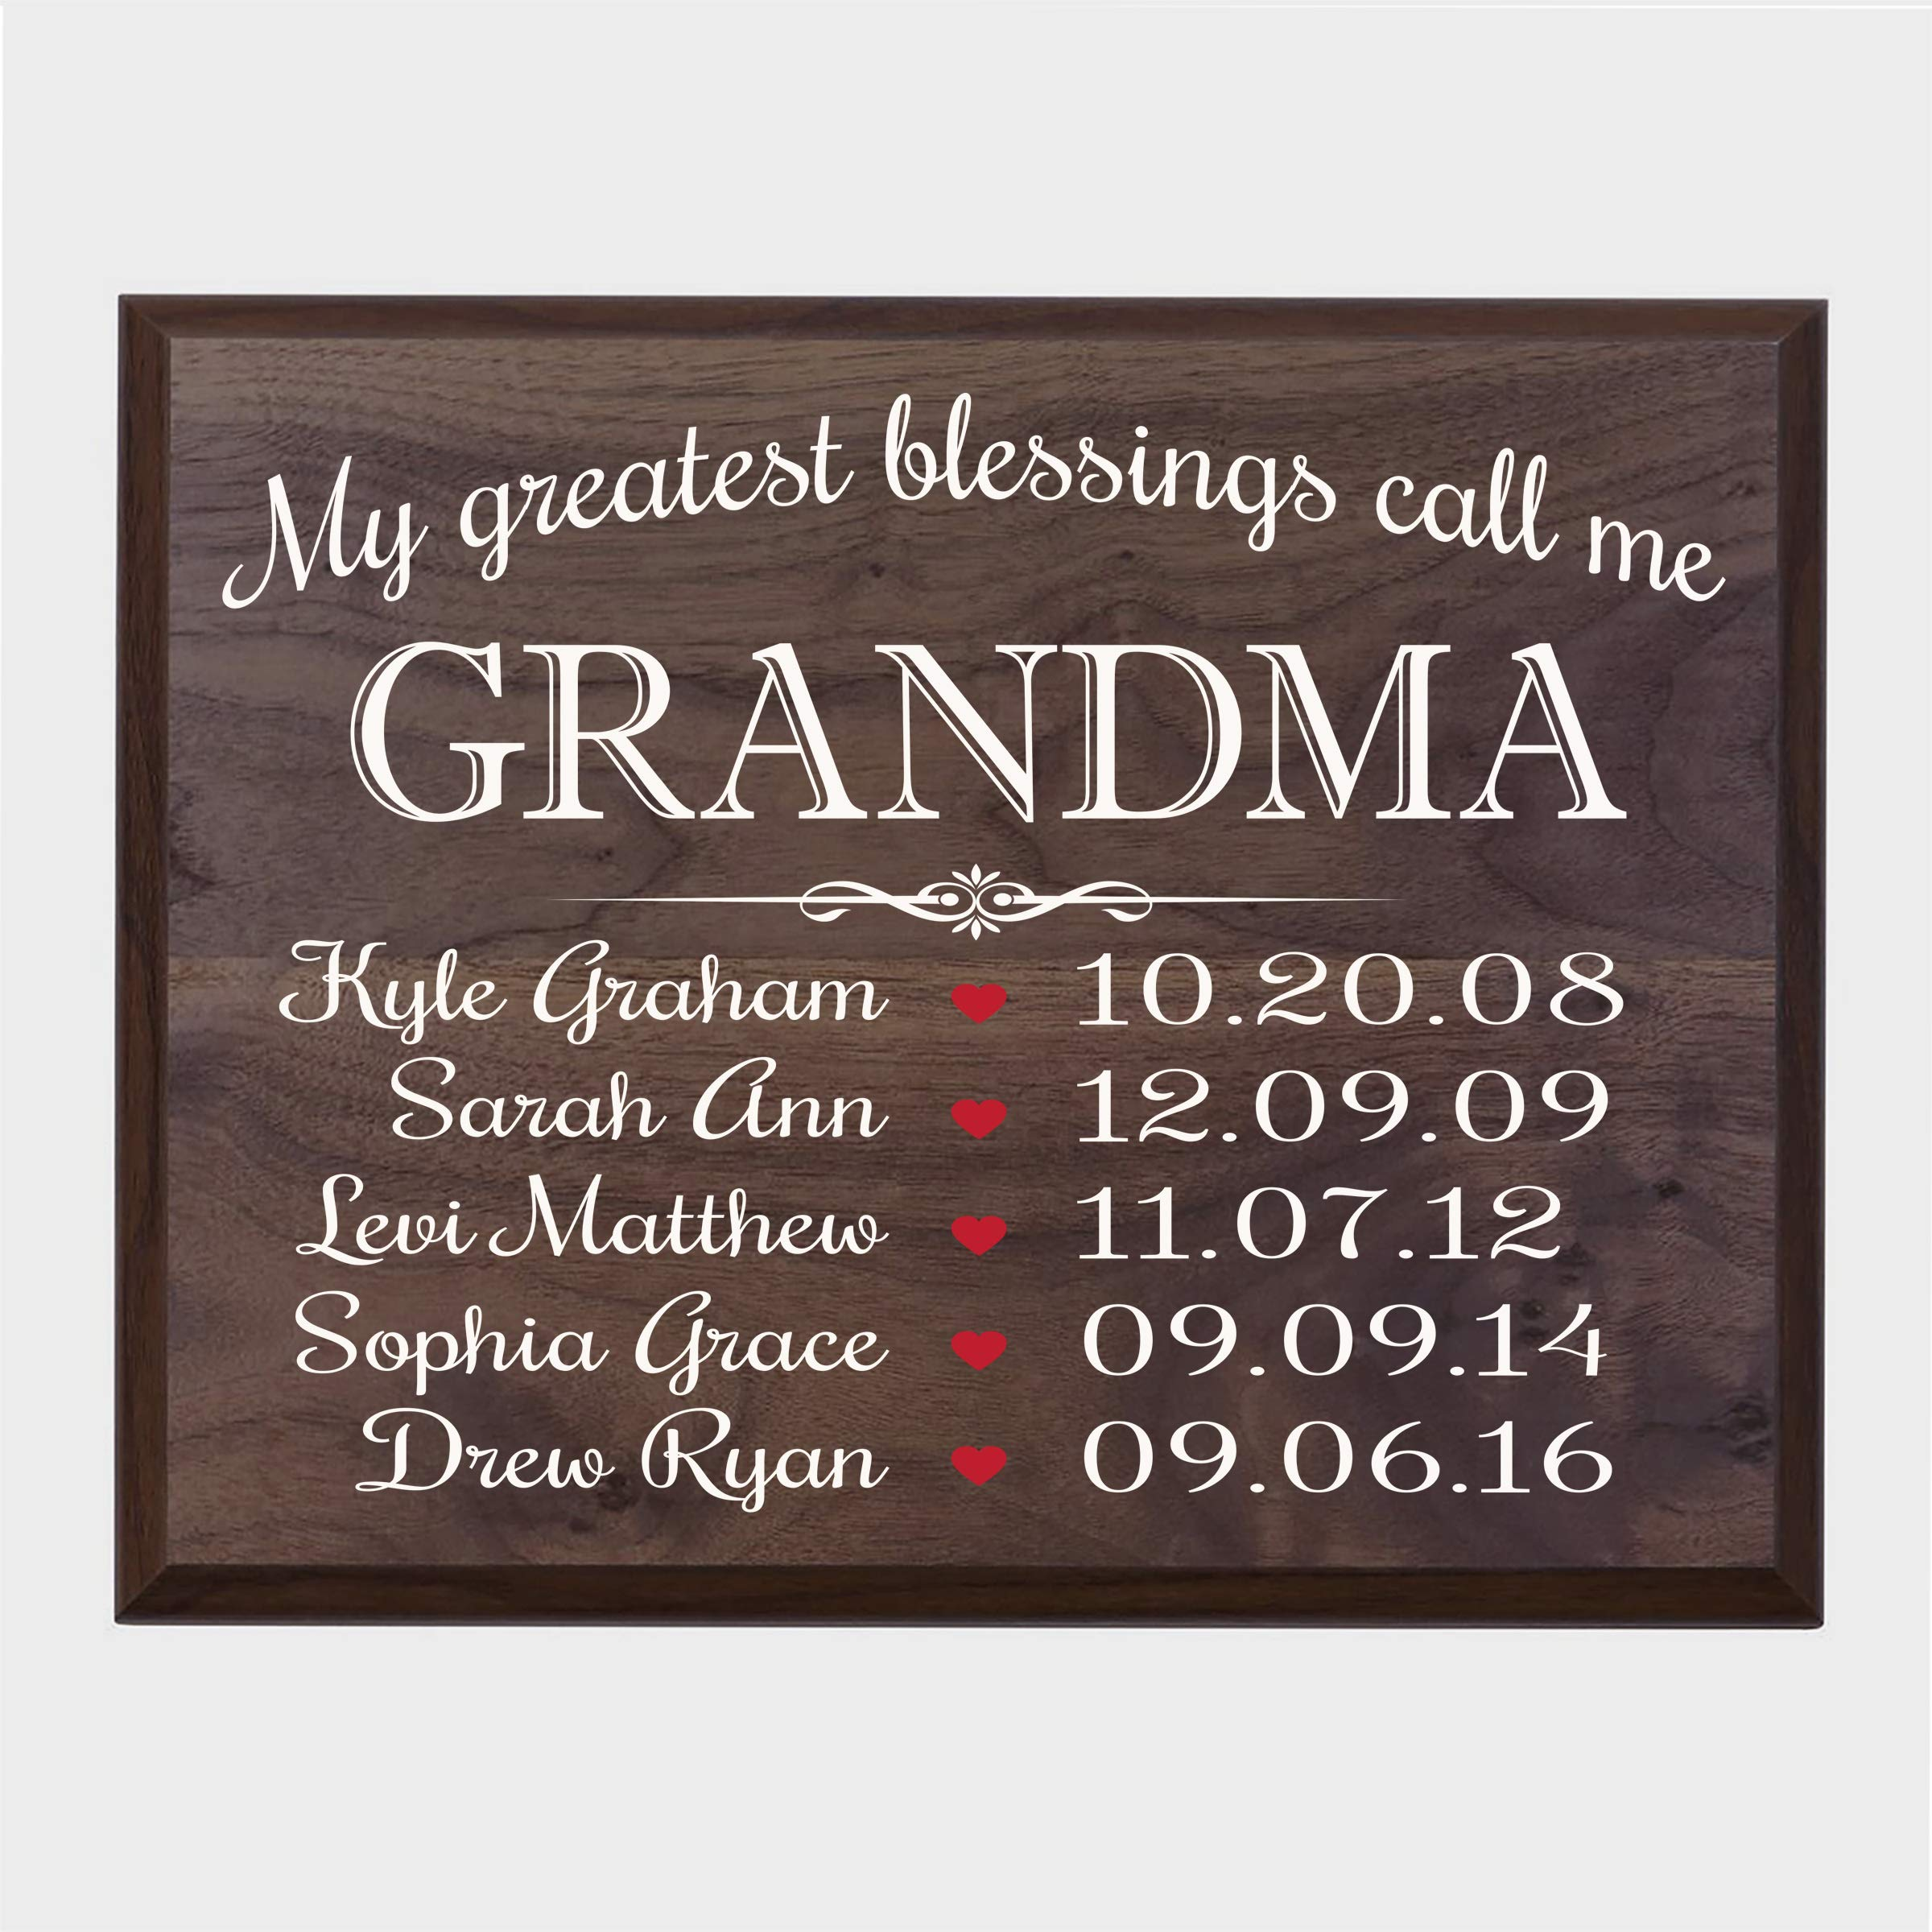 LifeSong Milestones Personalized Gifts for Grandma Wall Plaque Sign with Children's Names Birth Dates to Remember My Greatest Blessings Call me Grandma (Walnut) by LifeSong Milestones (Image #2)